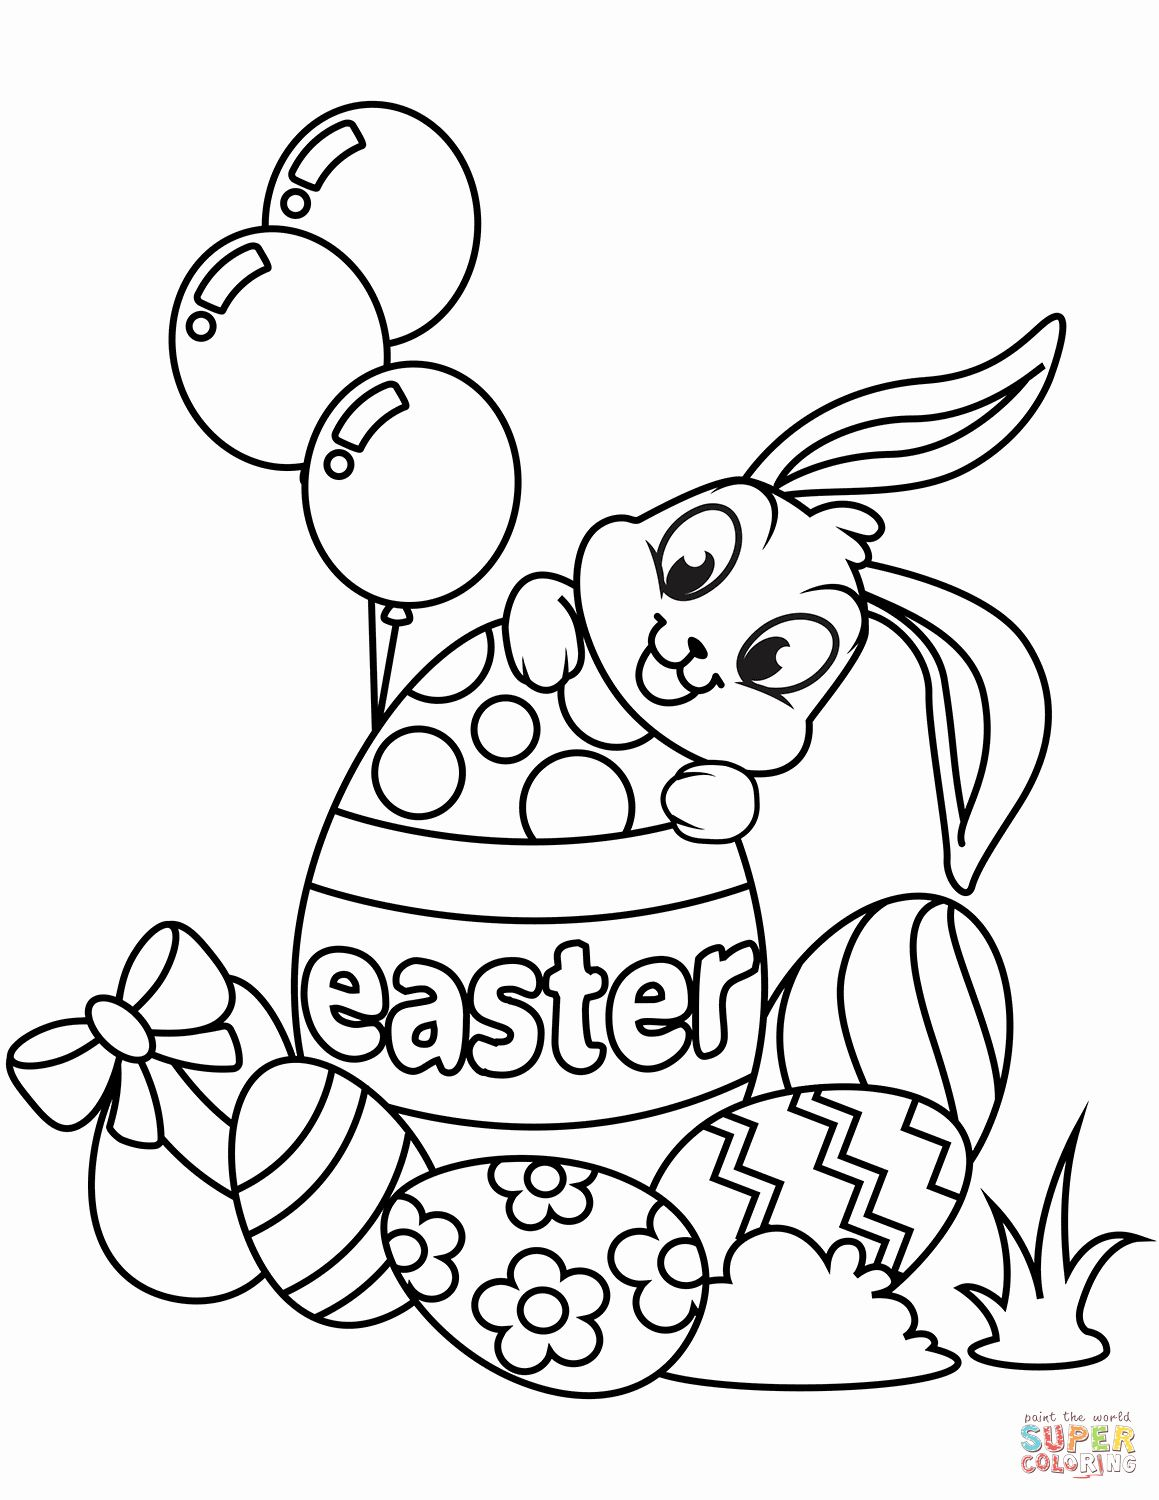 Cute Spring Coloring Pages Elegant Cute Easter Bunny And Eggs Coloring Page Easter Bunny Colouring Easter Coloring Book Easter Coloring Sheets